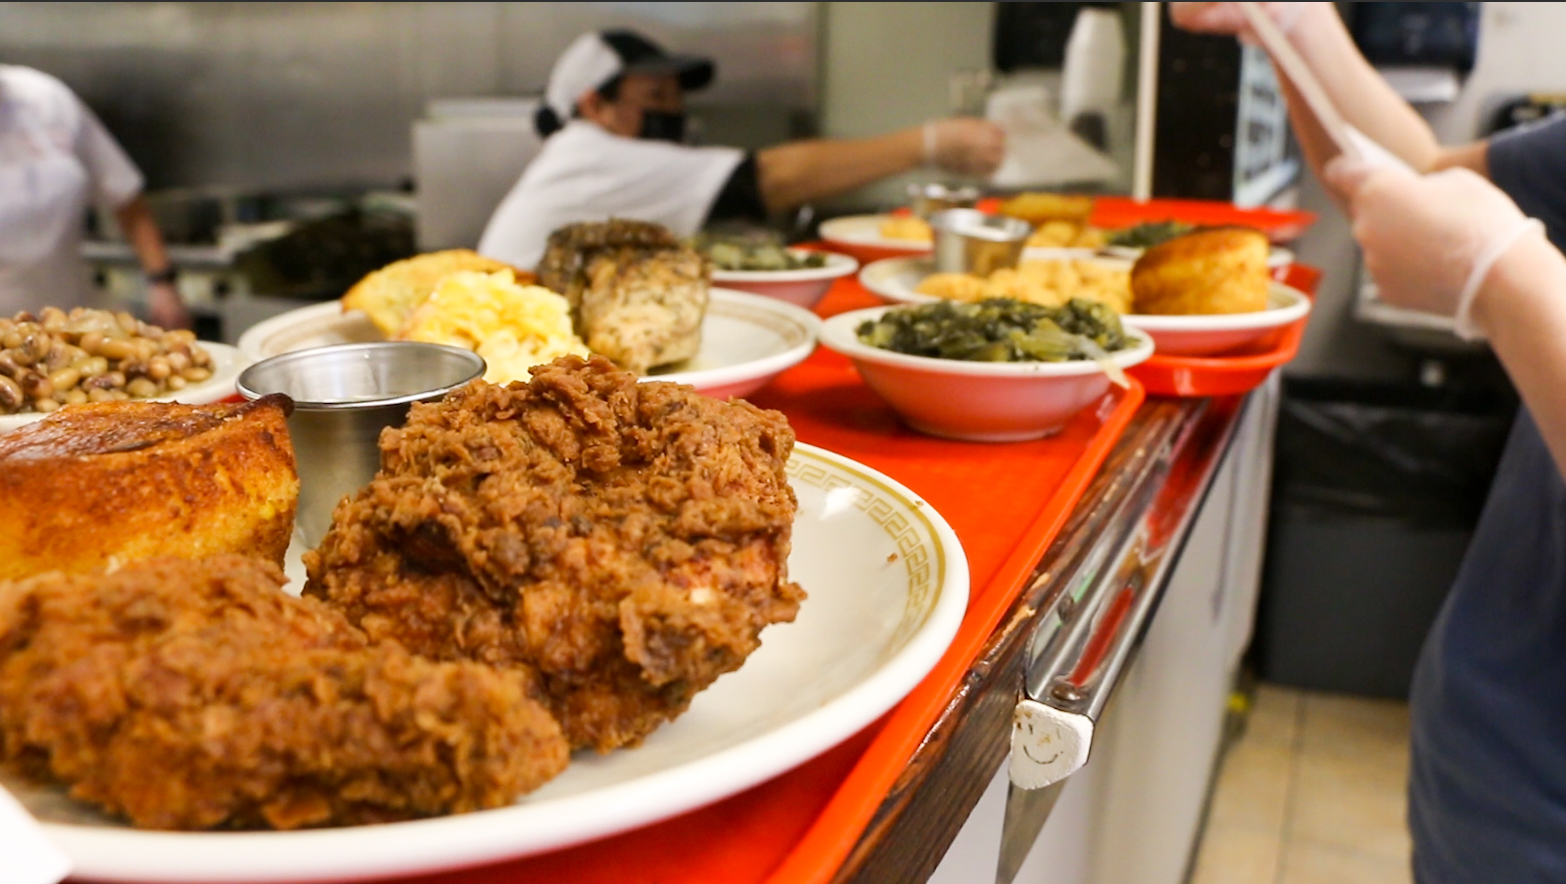 Fried chicken and sides at Johnny's Restaurant in Homewood, AL